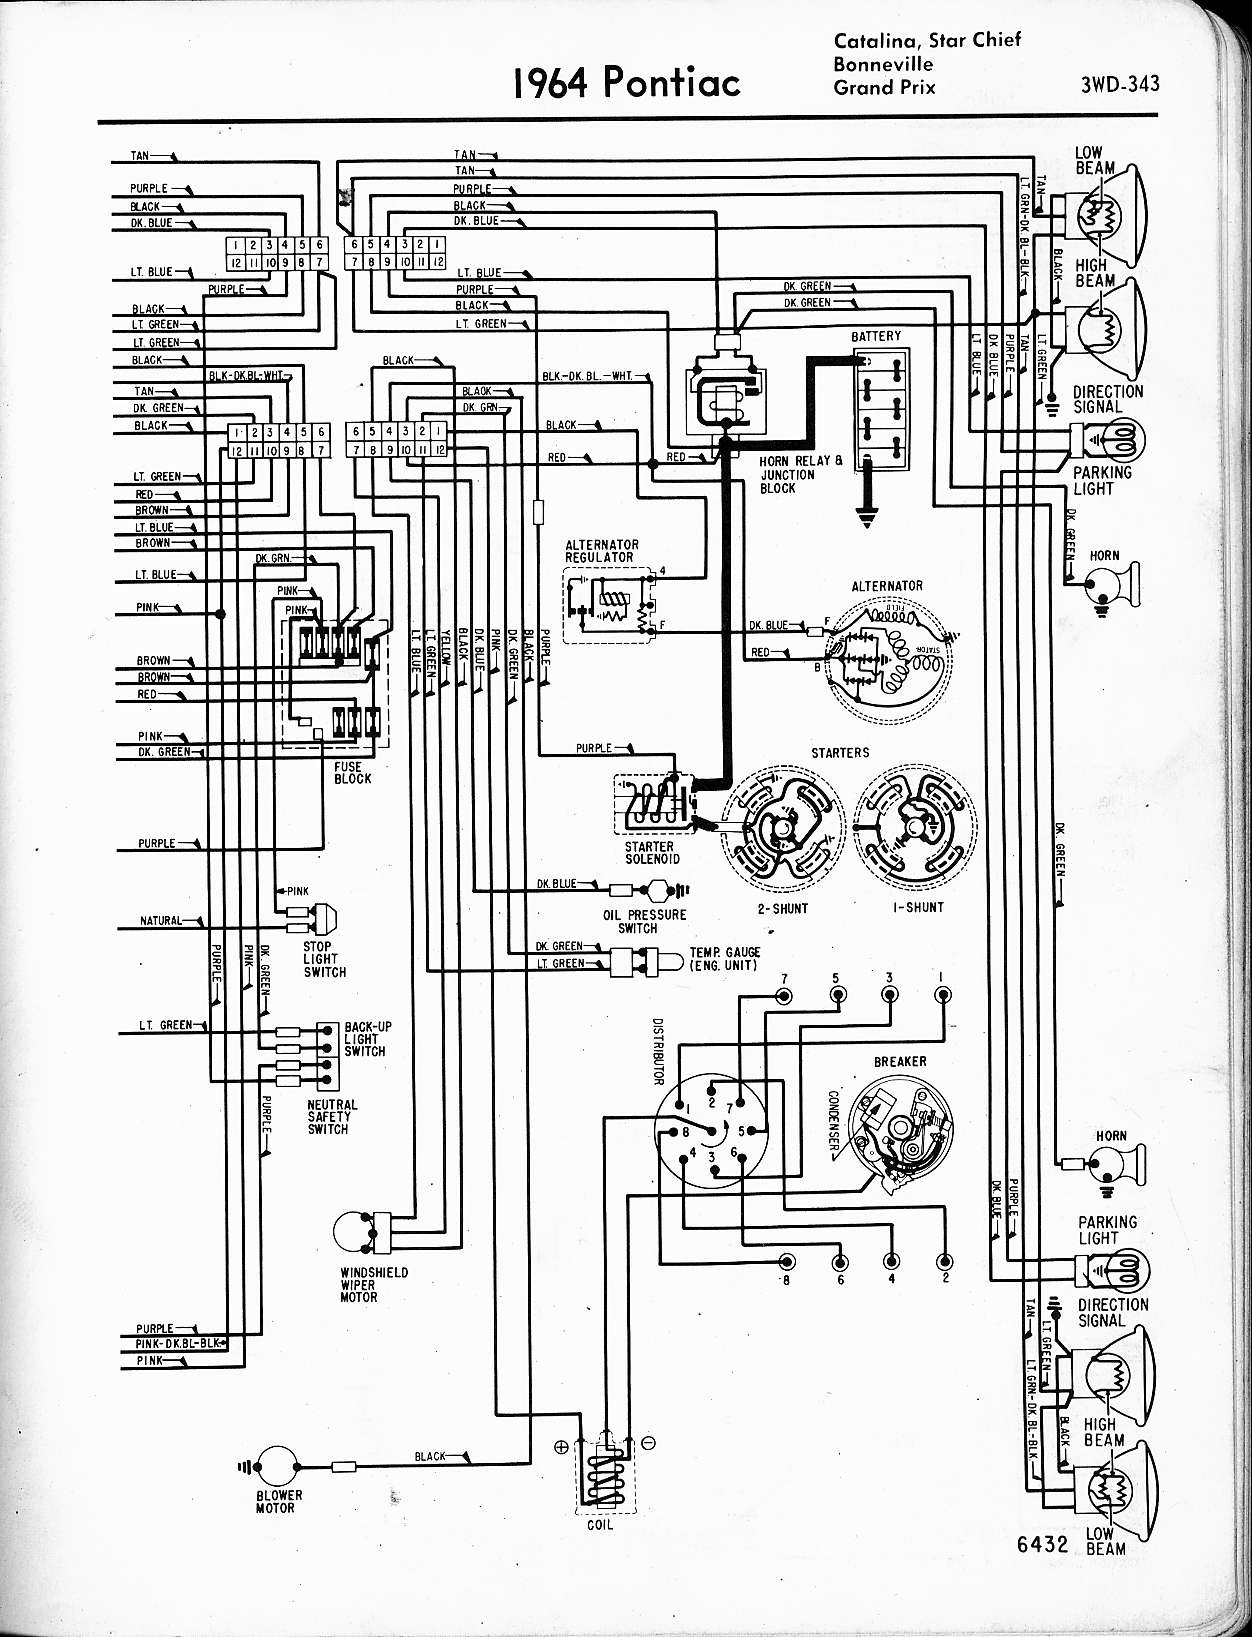 Mwire on 69 Camaro Light Wiring Diagram